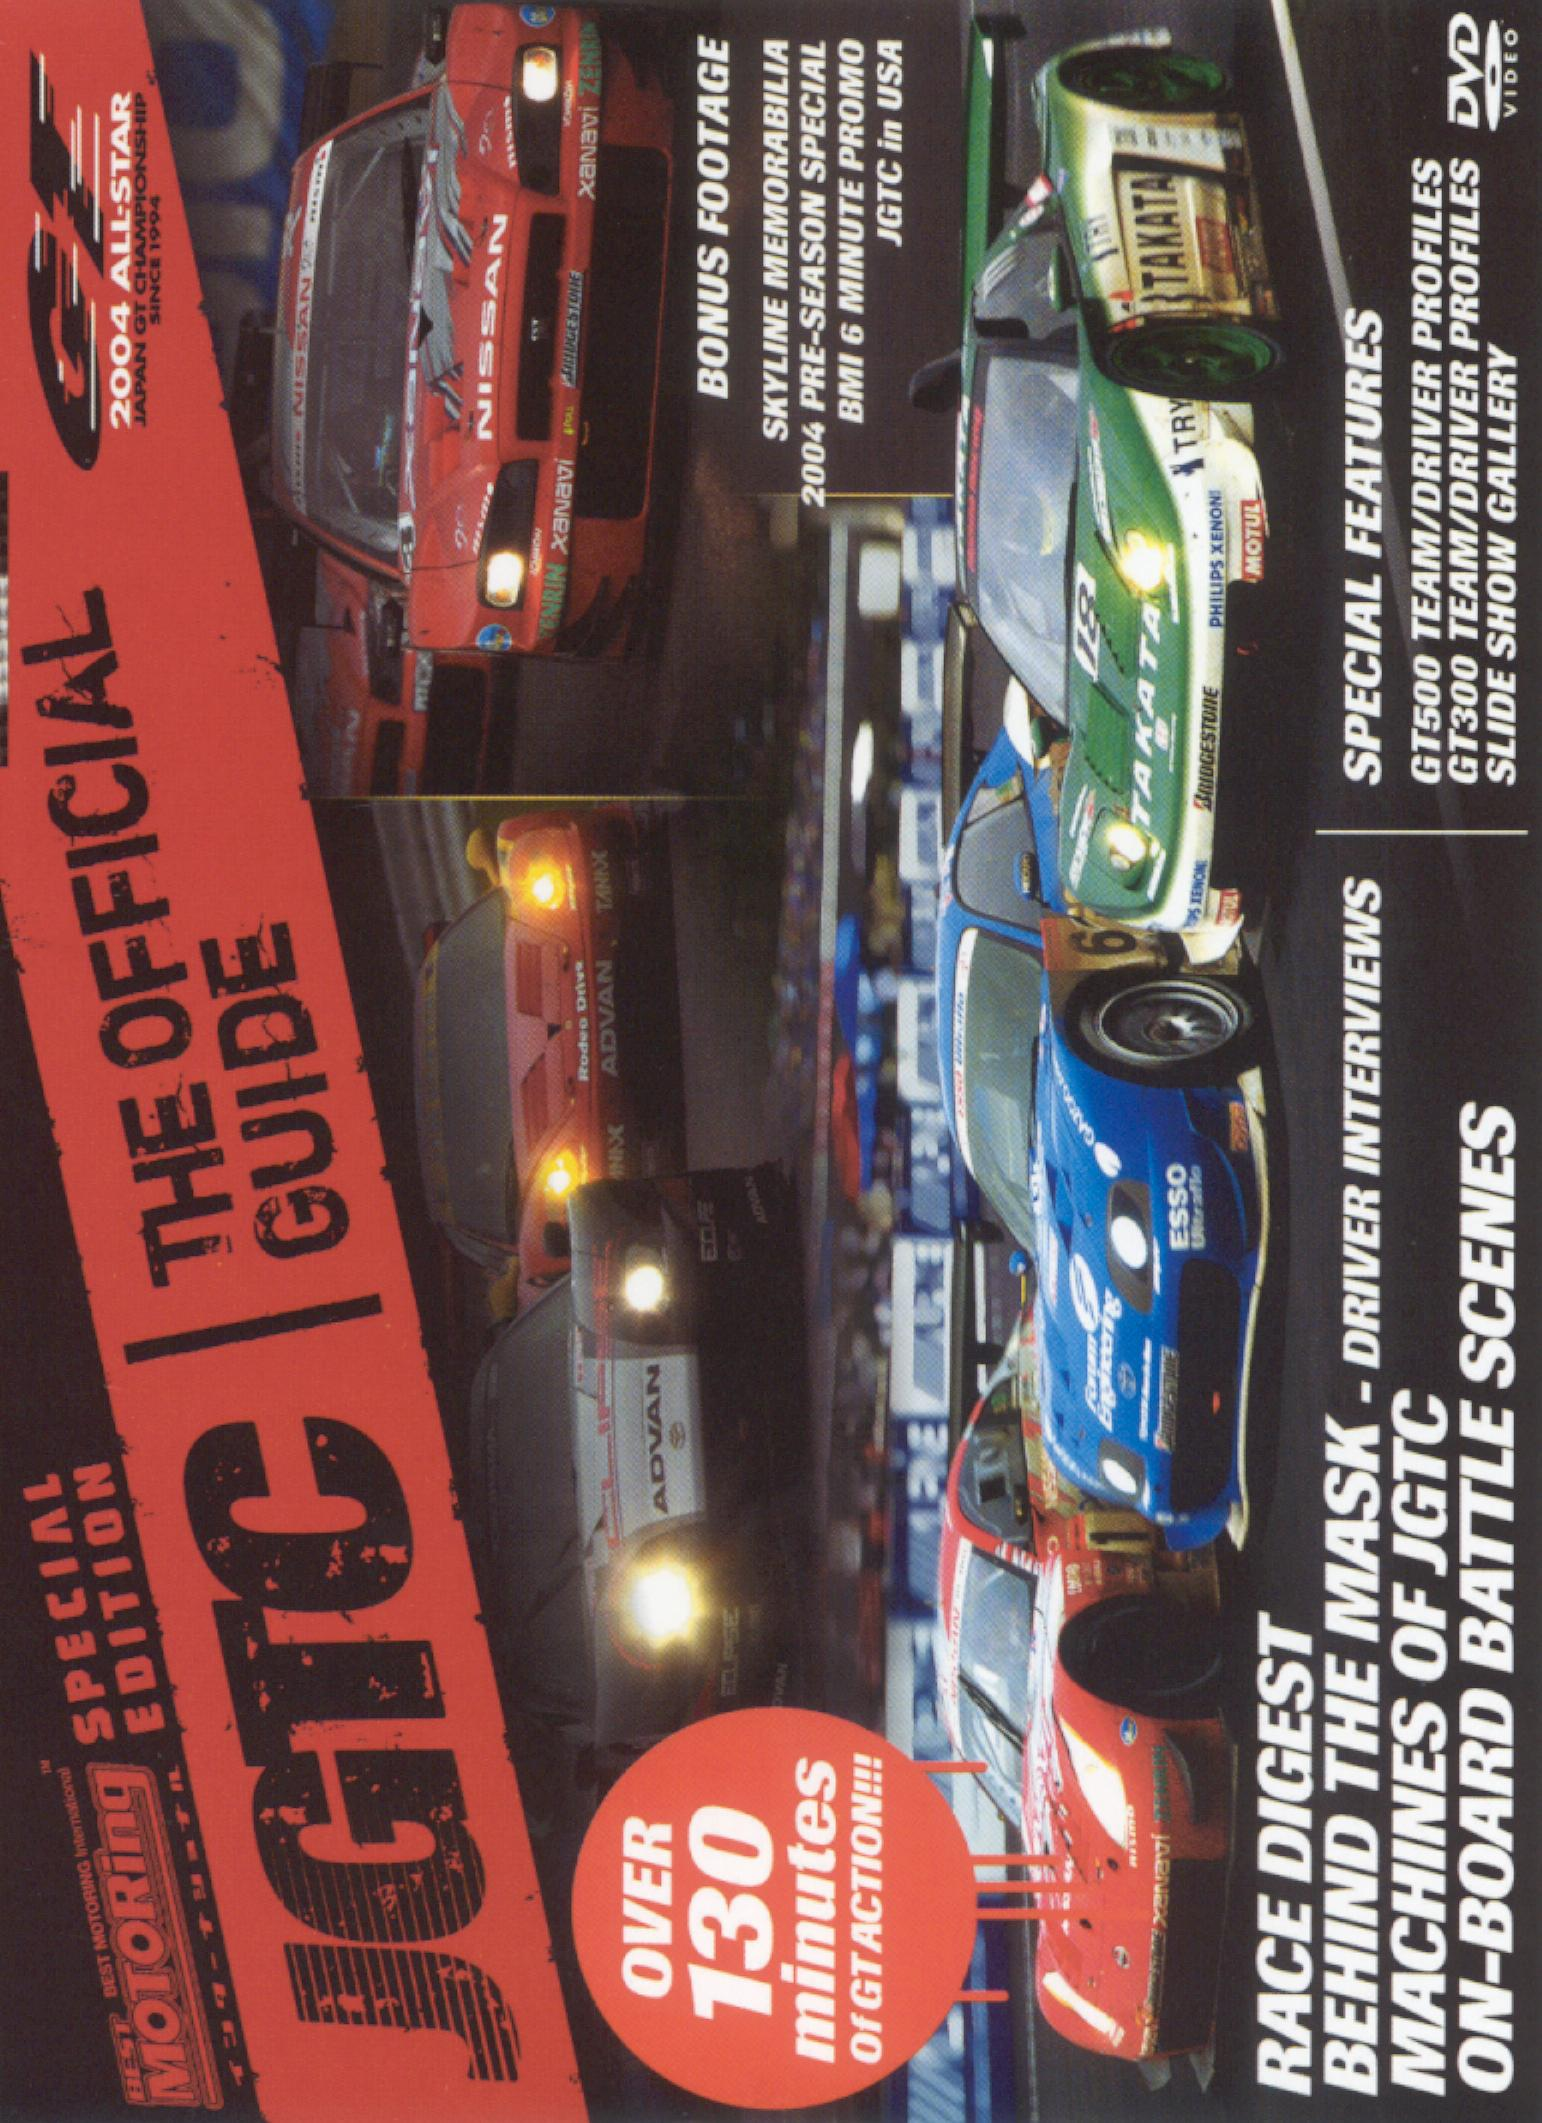 Best Motoring: JGTC - The Official Guide